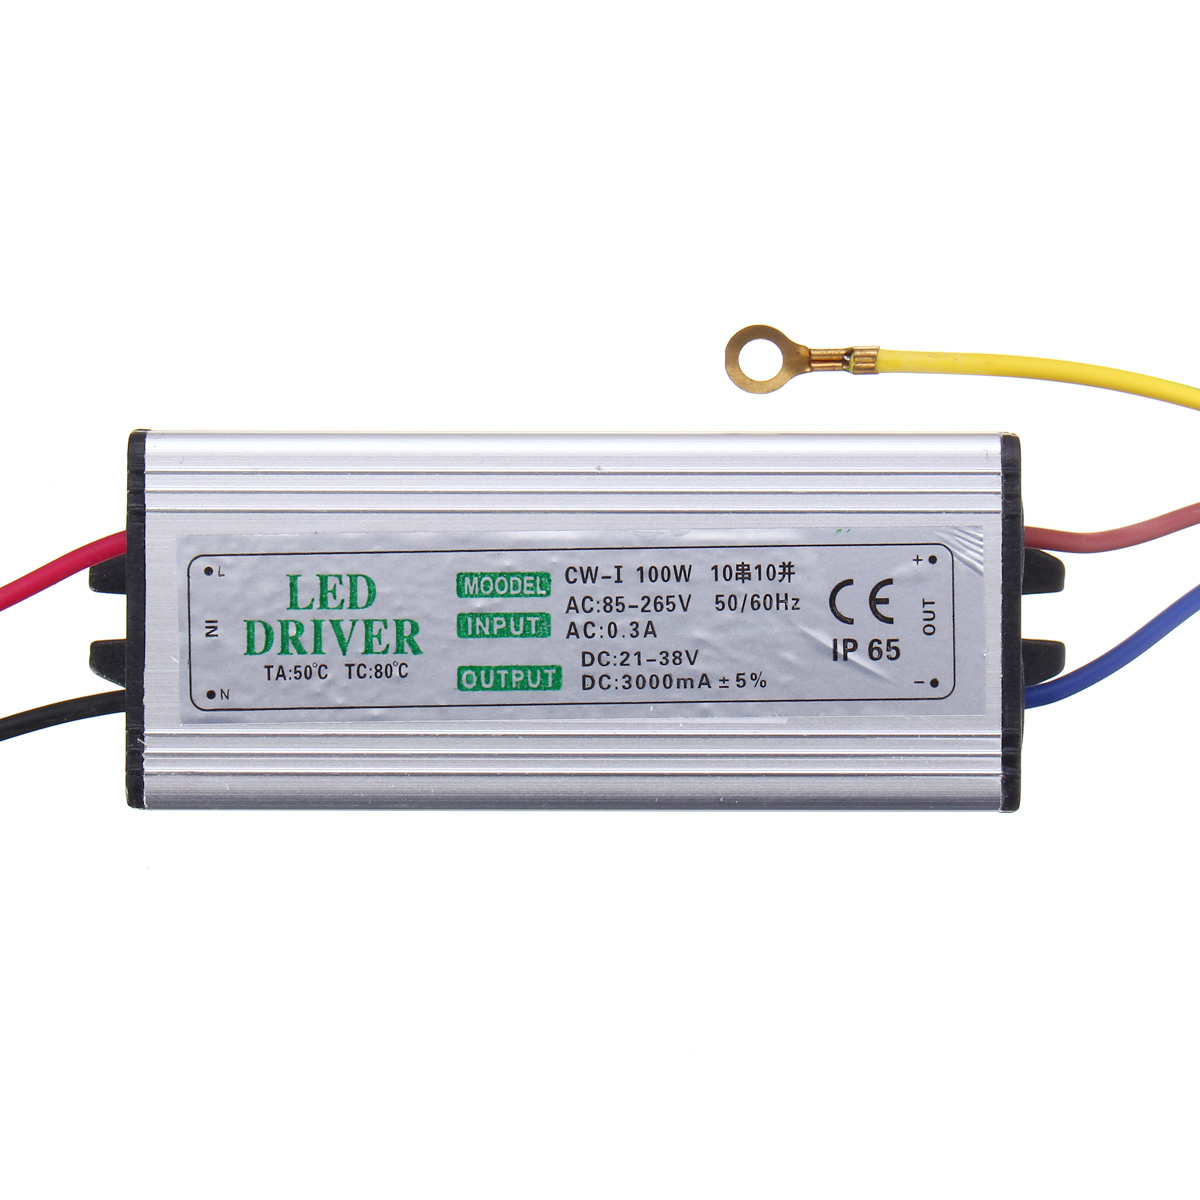 10W 20W 30W 50W 100W Waterproof High Power Supply LED Driver AC85-265V